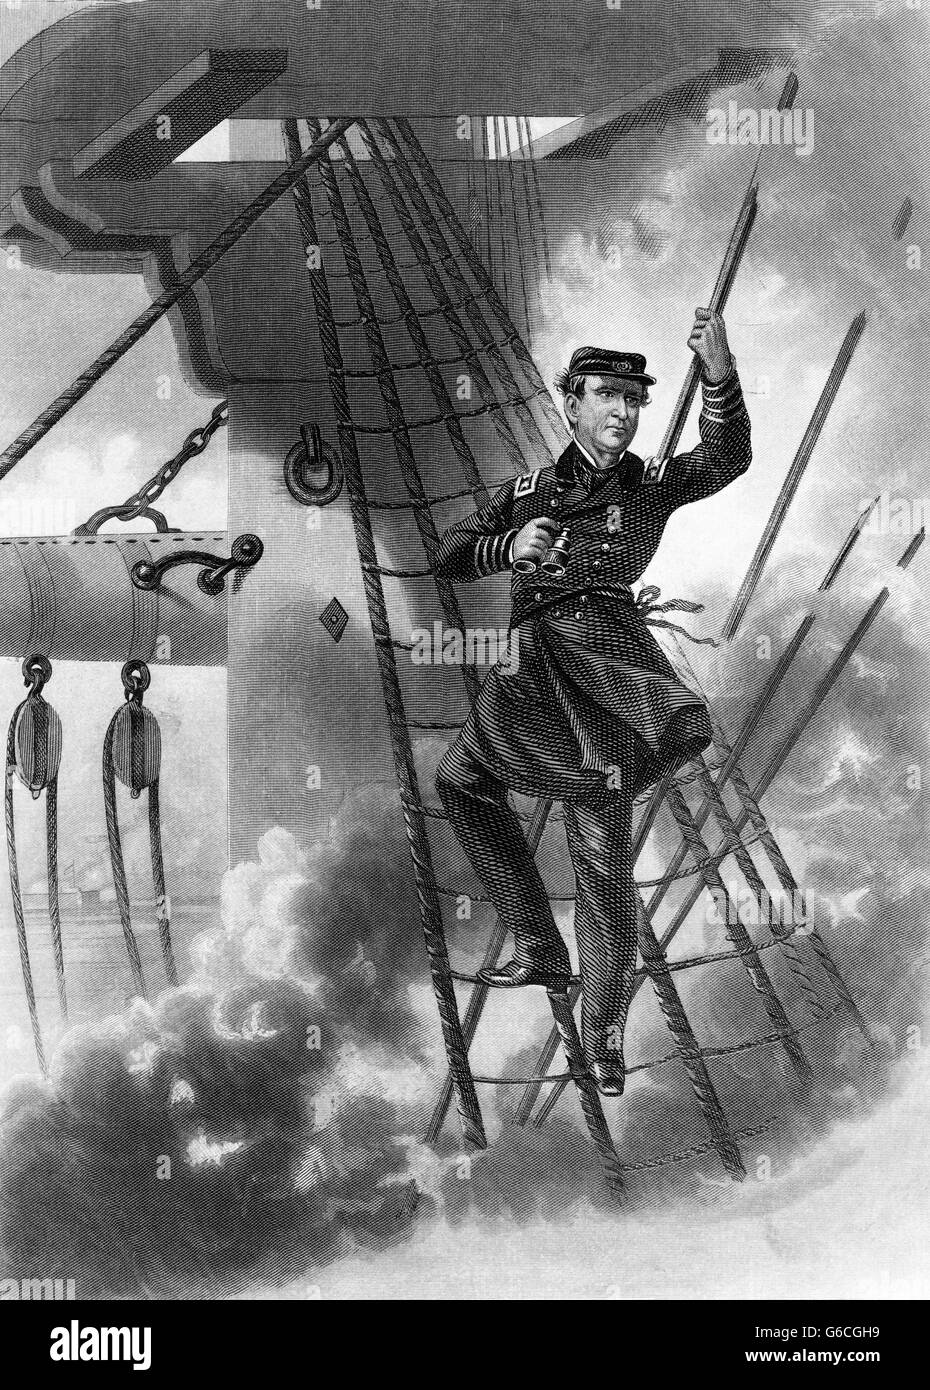 Uss lackawanna vs css tennessee at the battle of mobile bay august 6 - 1860s August 1864 Battle Mobile Bay Alabama Rear Admiral David Farragut Lashed To Rigging Damn The